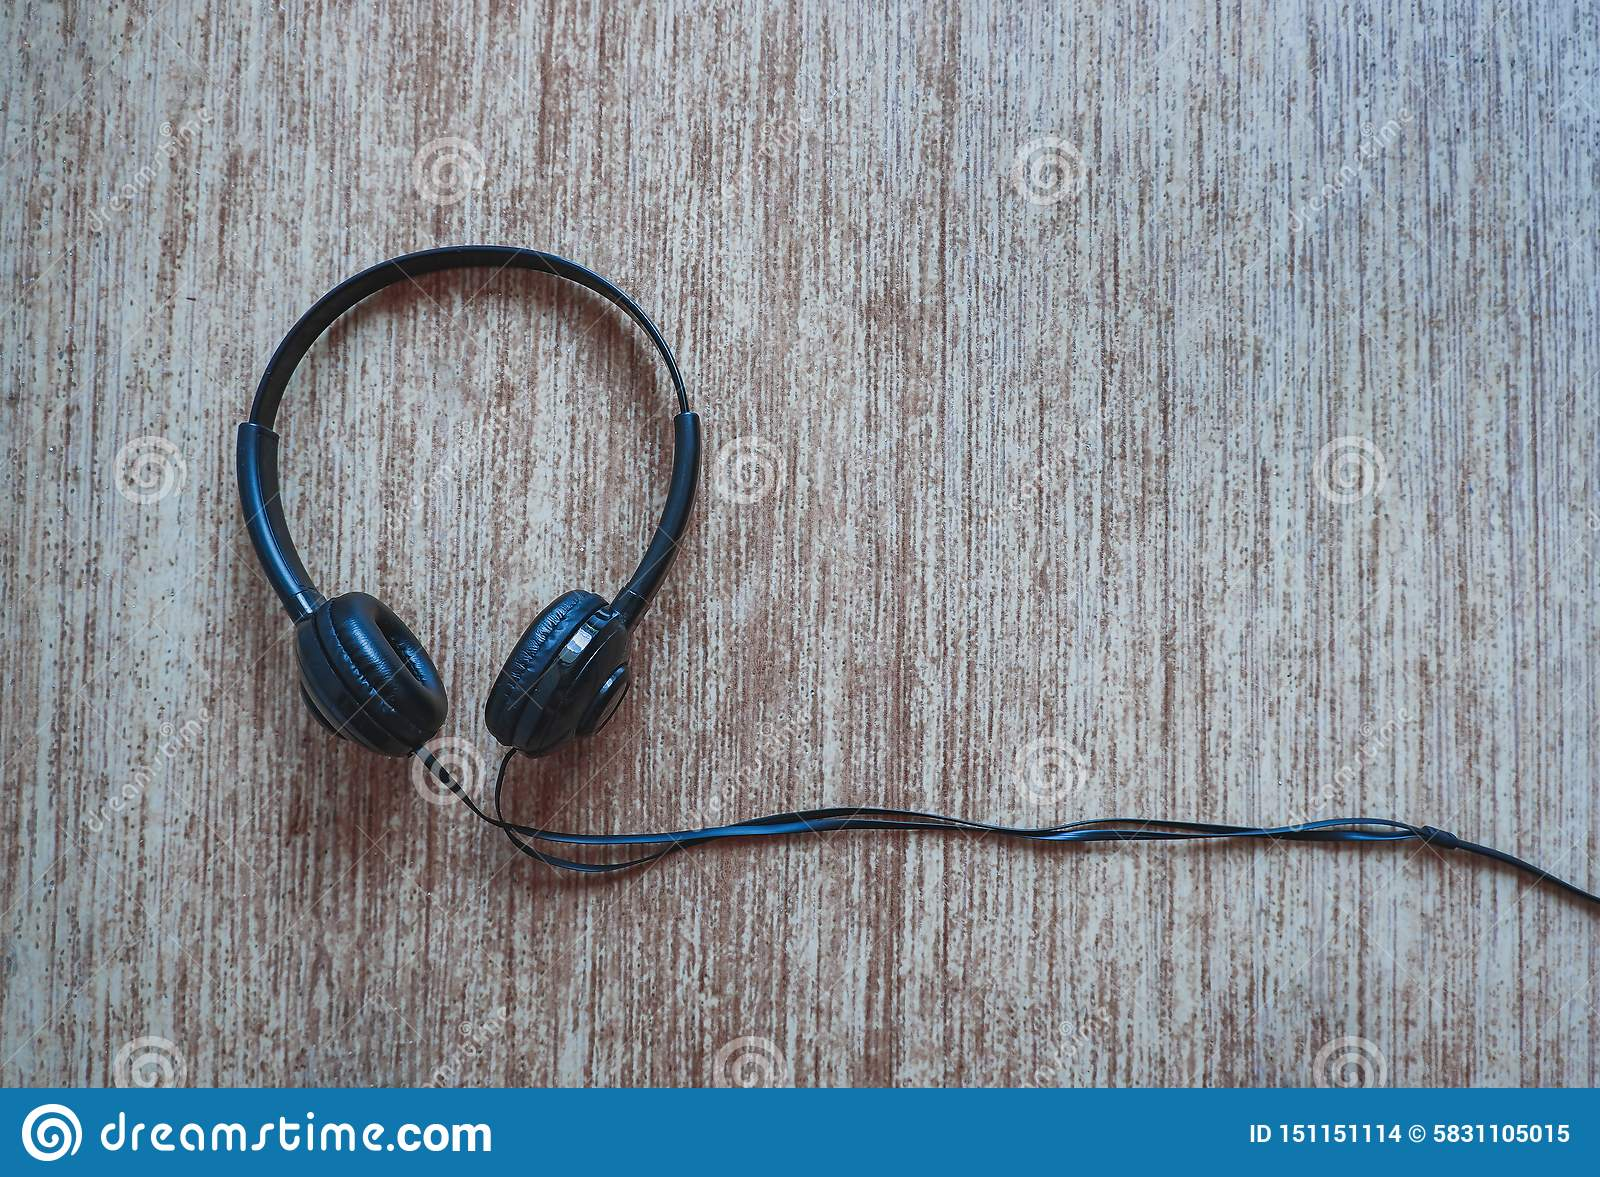 Black headphone with rustic background